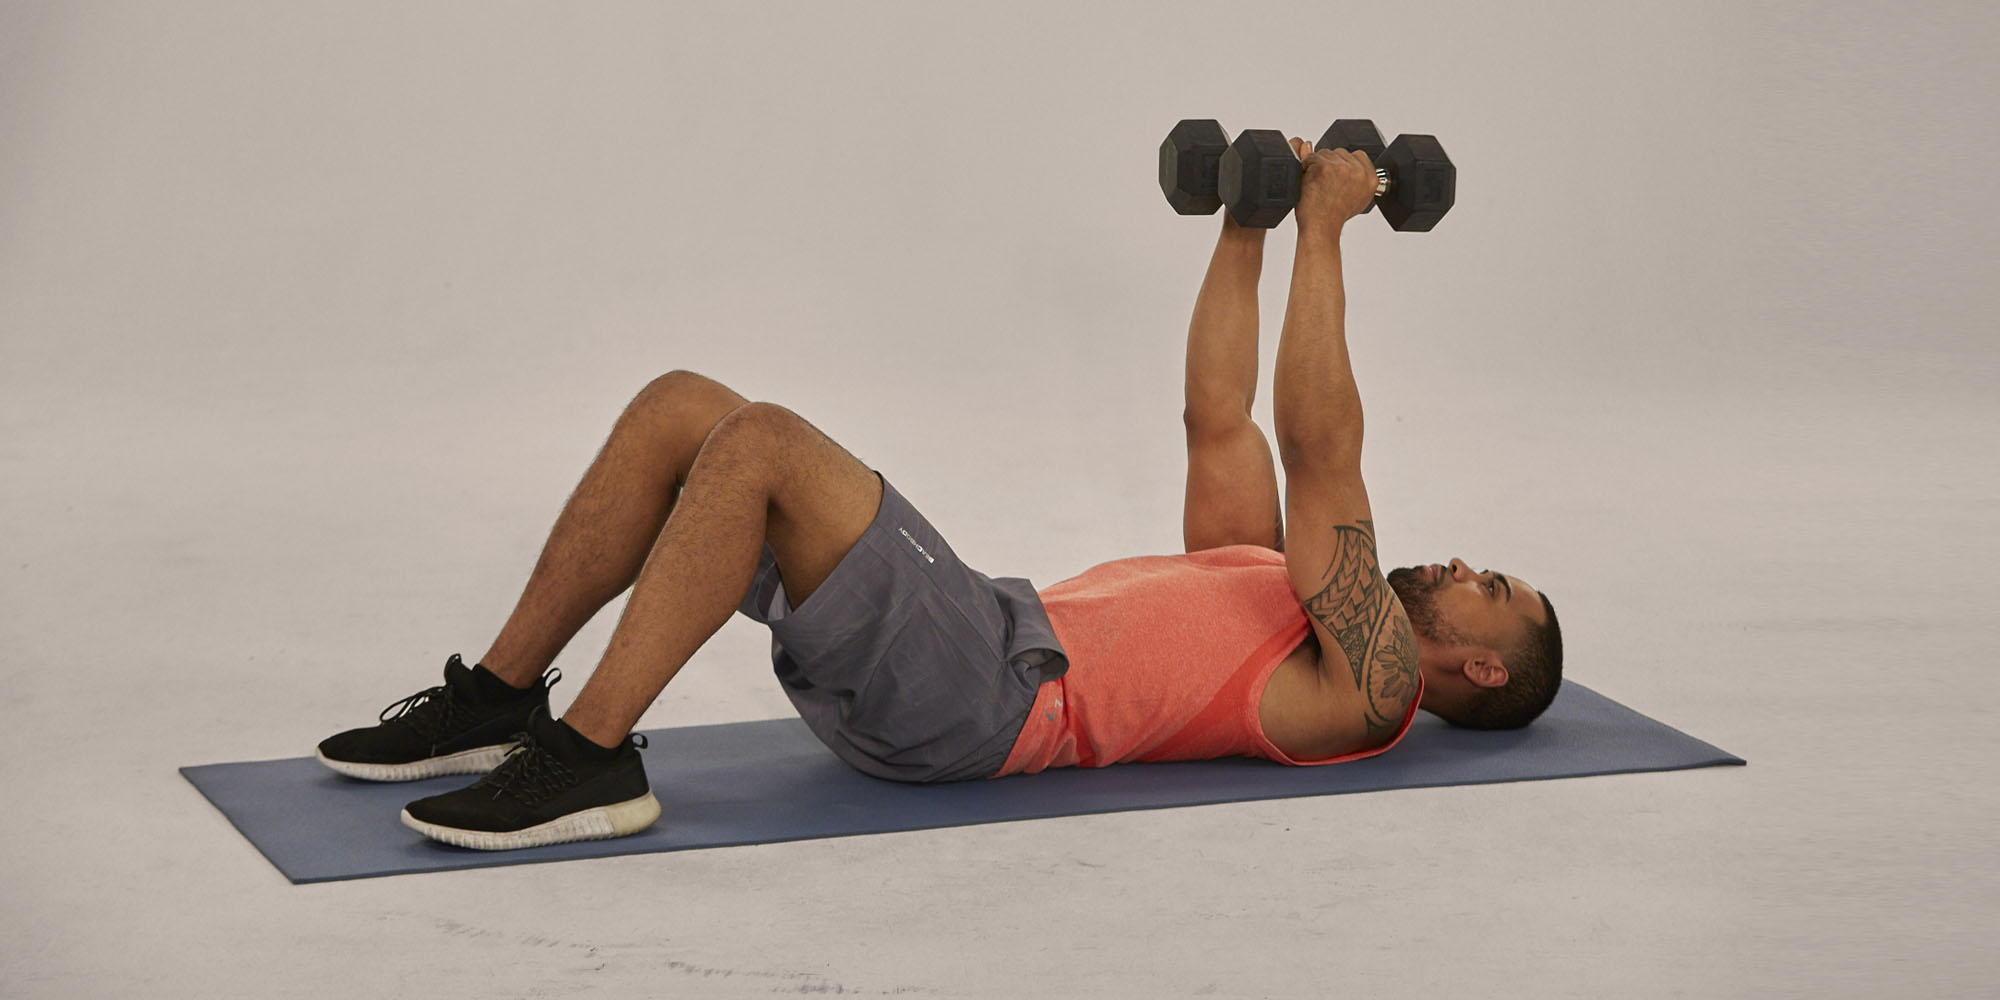 9 Exercises to Add Into Your Upper Body Workouts